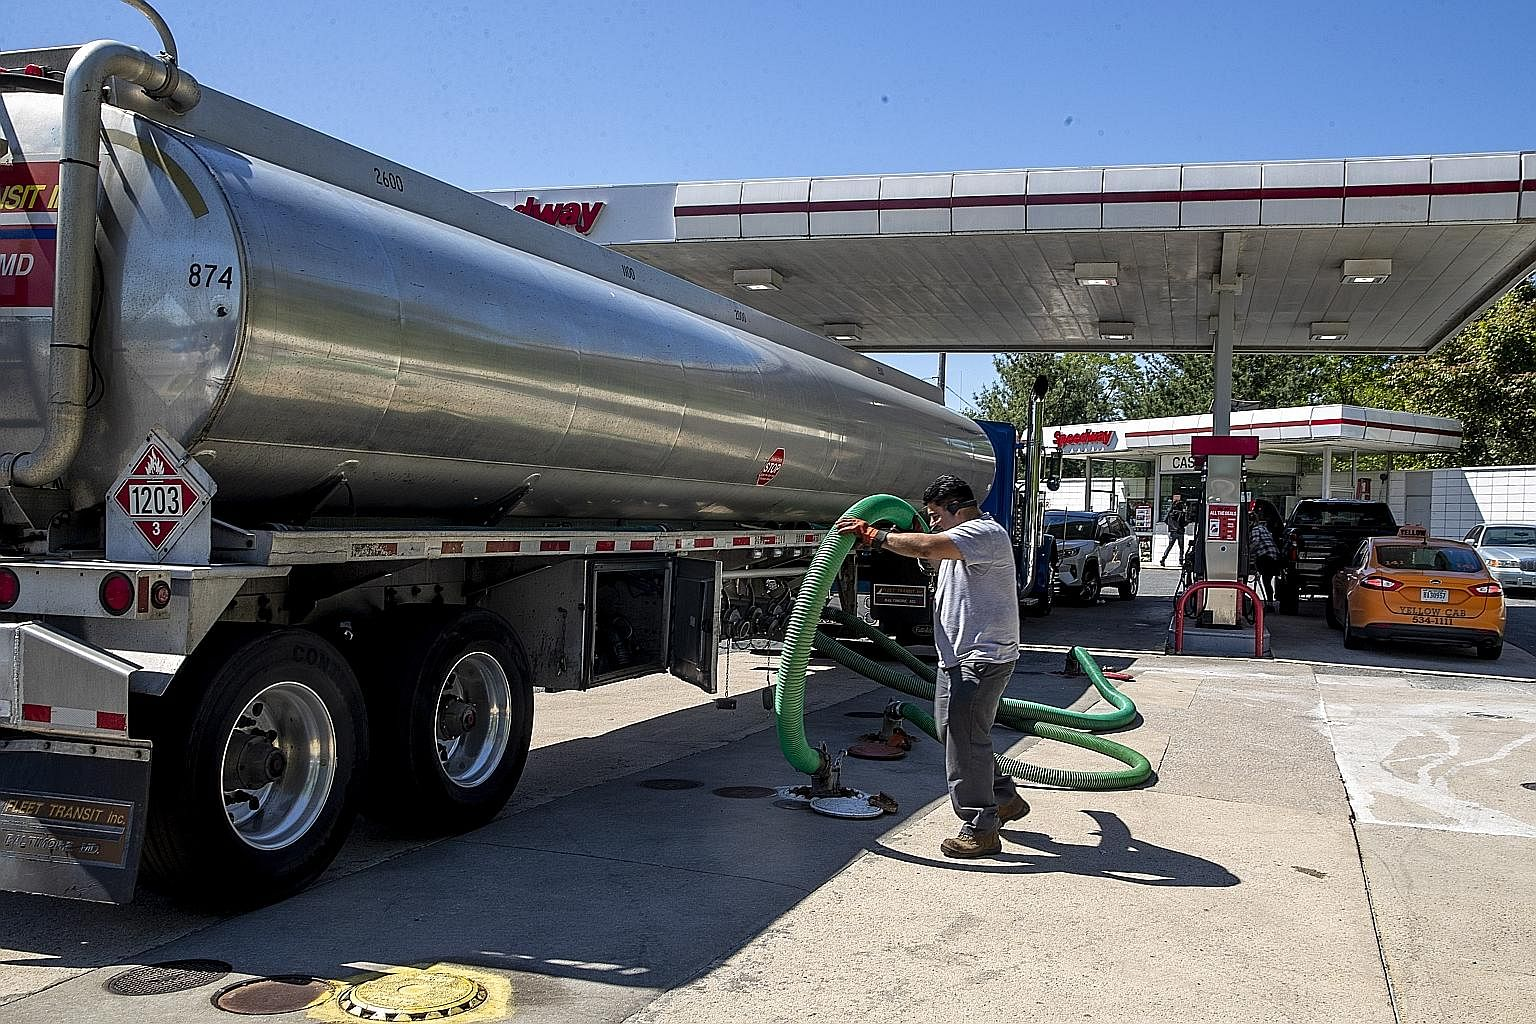 A tanker delivering fuel to a Speedway petrol station in Alexandria, Virginia, last Thursday. A ransomware attack had shut down a major fuel pipeline in America and sent people scrambling for petrol in the south-east last week. A Colonial Pipeline fa